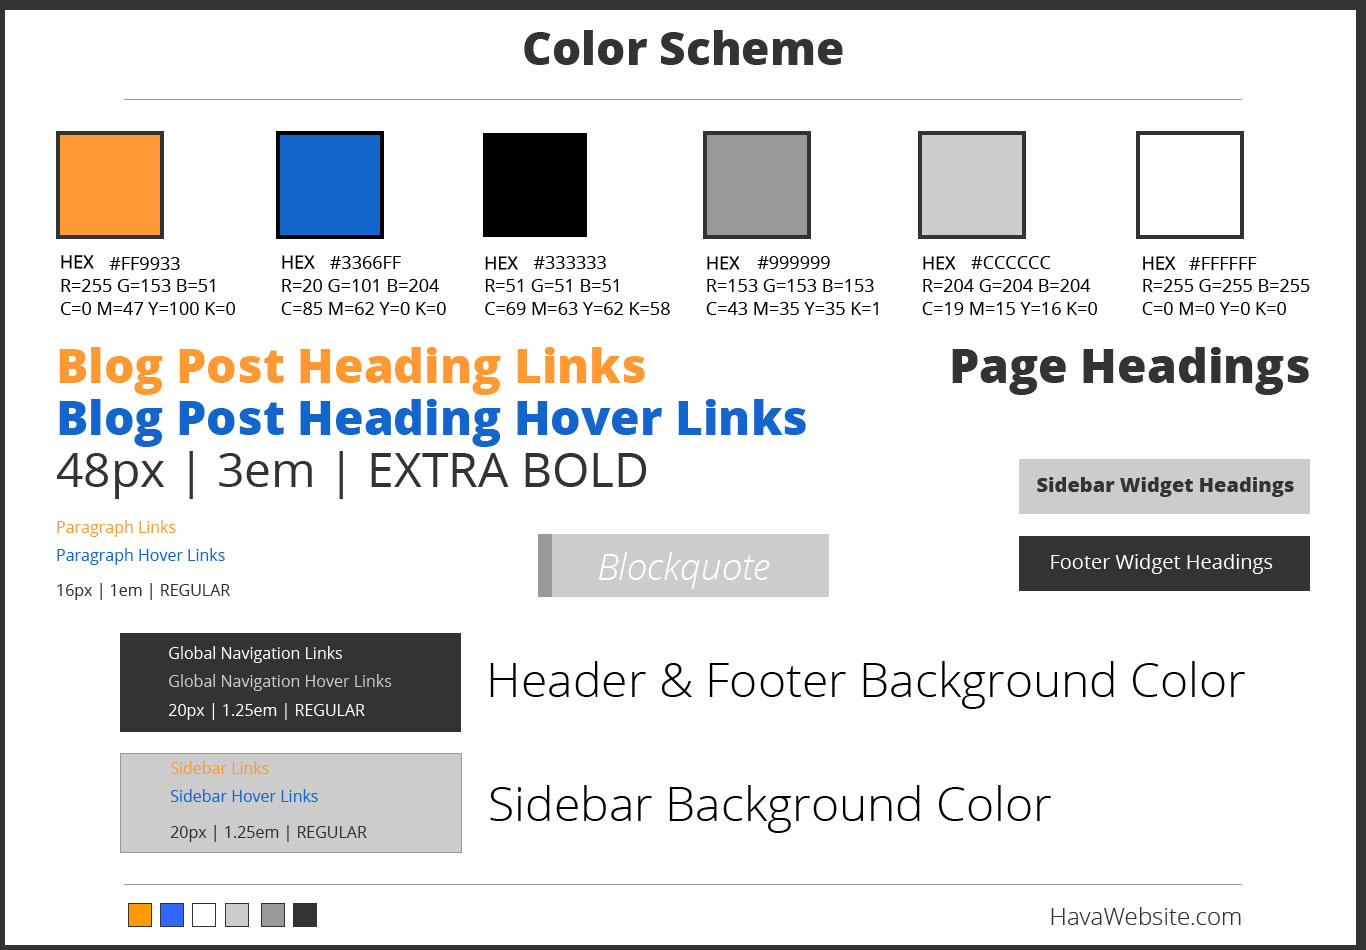 website design service color scheme example